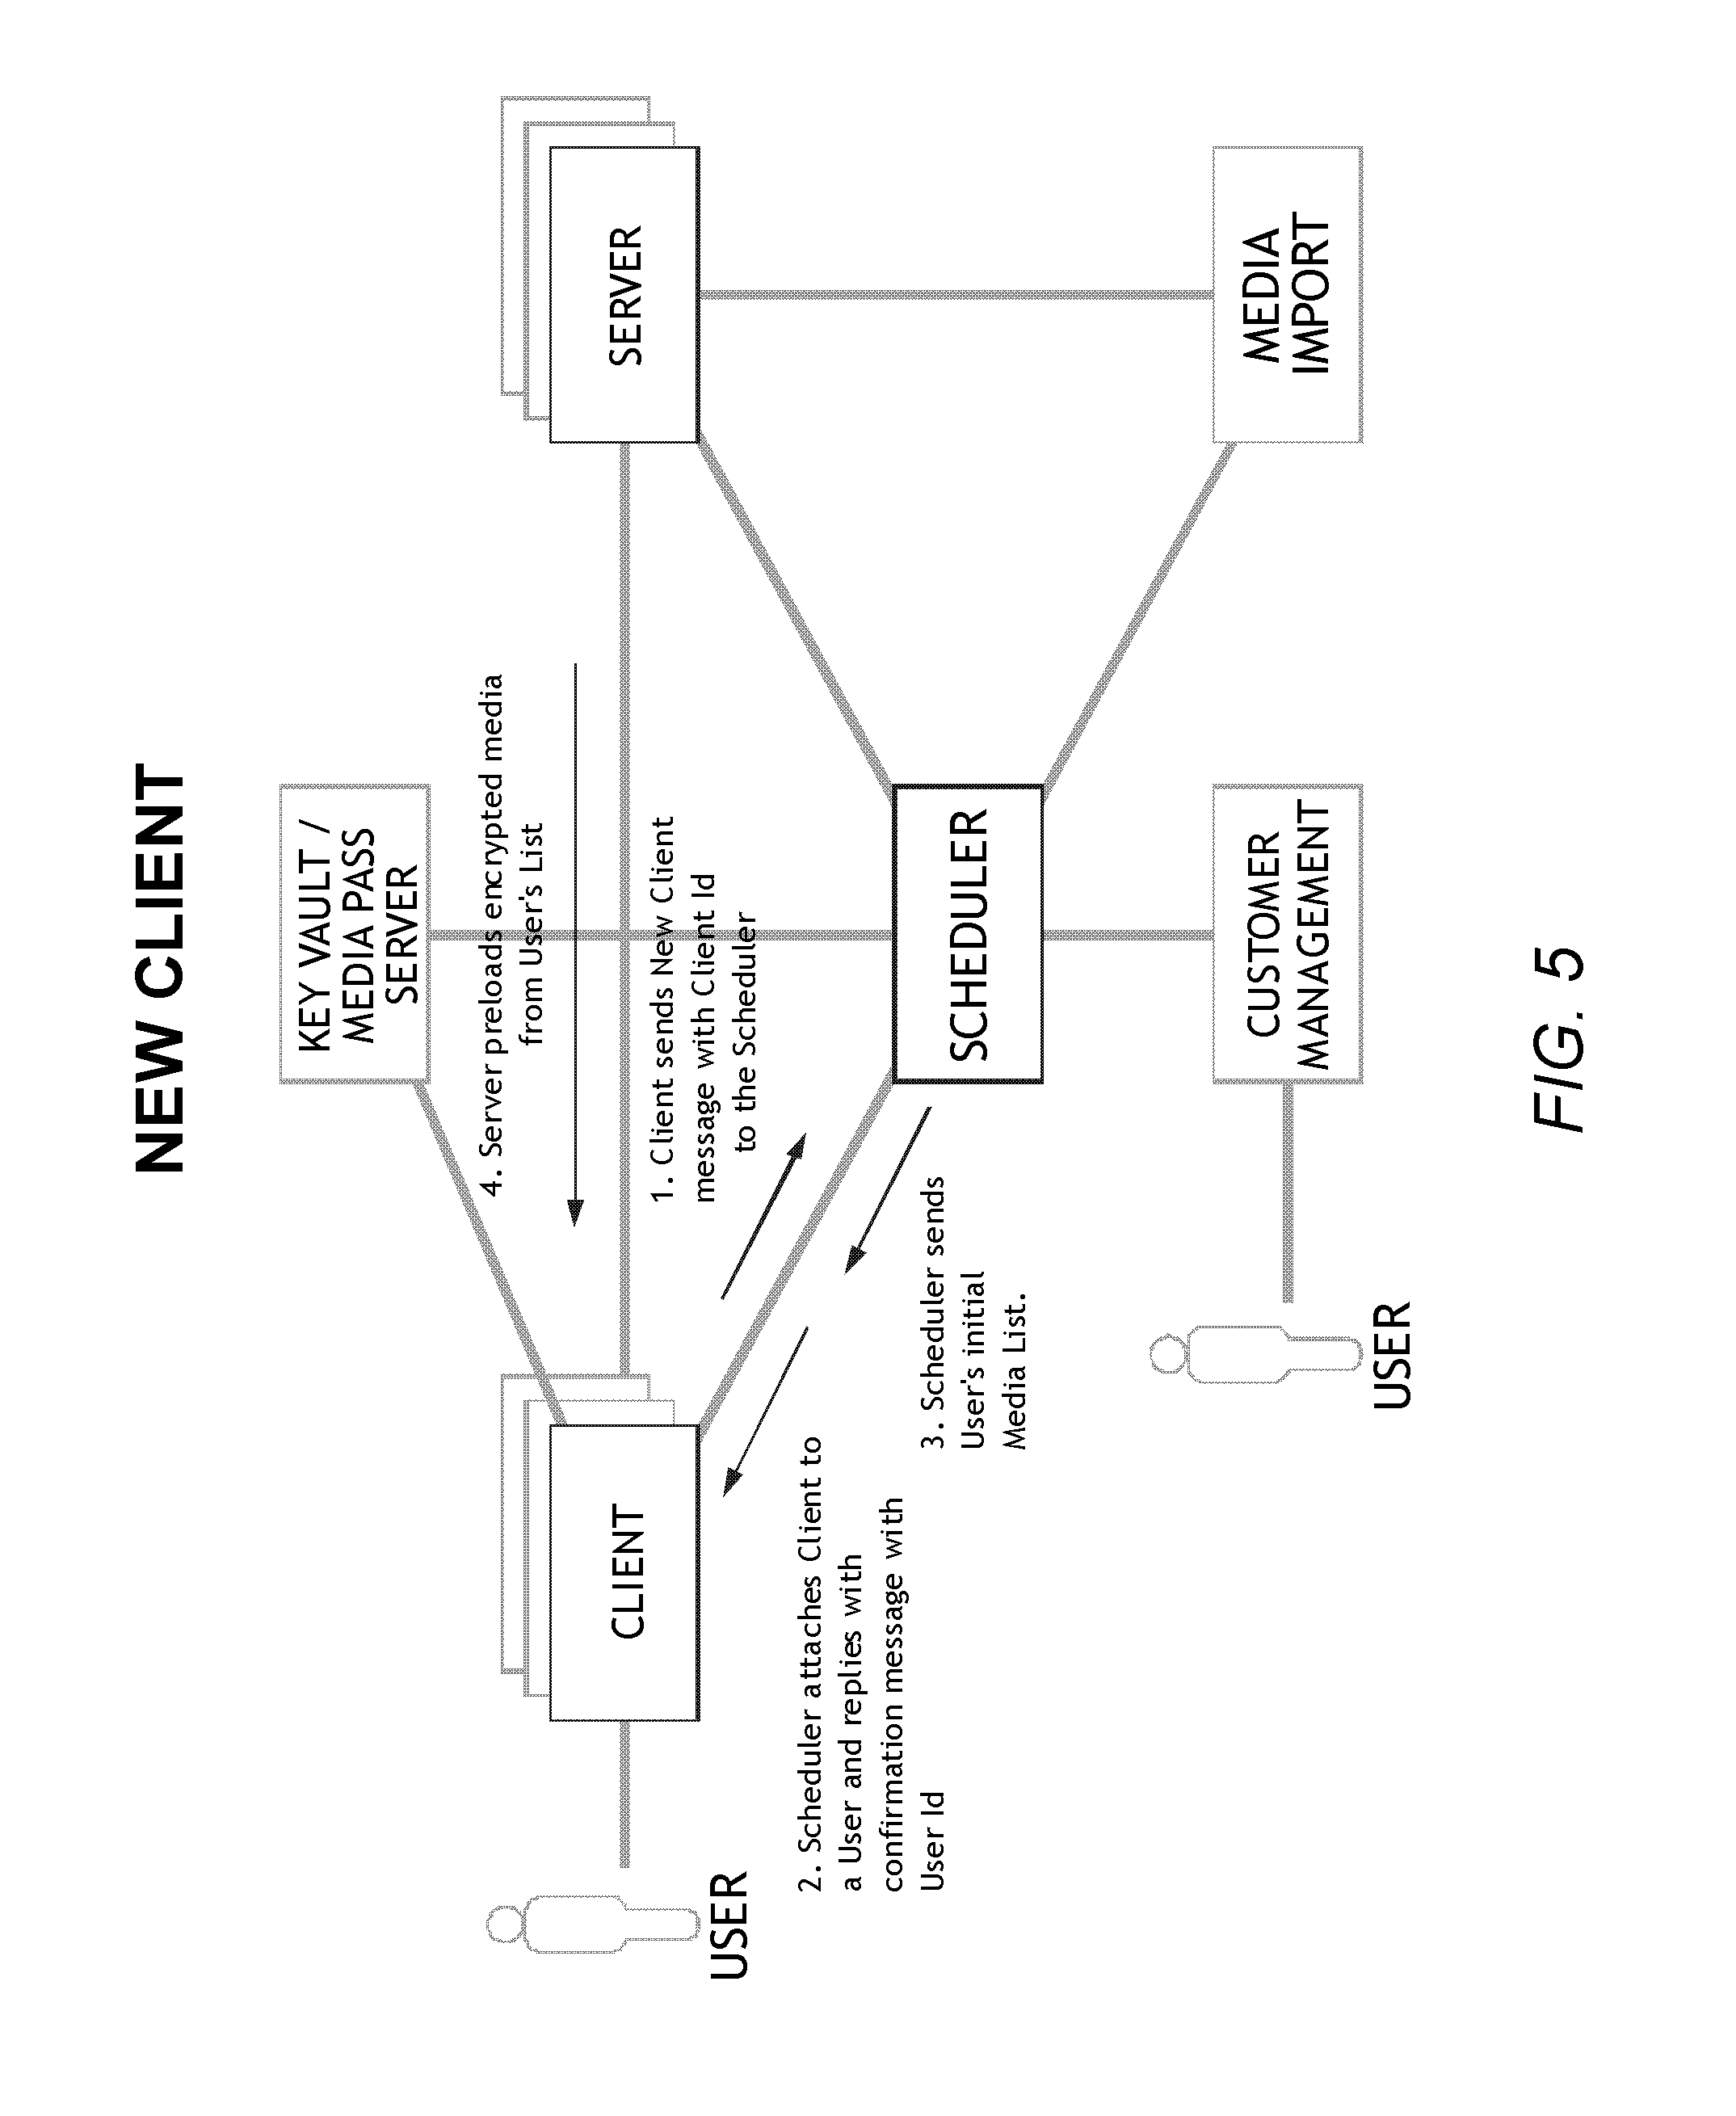 US20050177745A1 - Distributed System and Methodology for